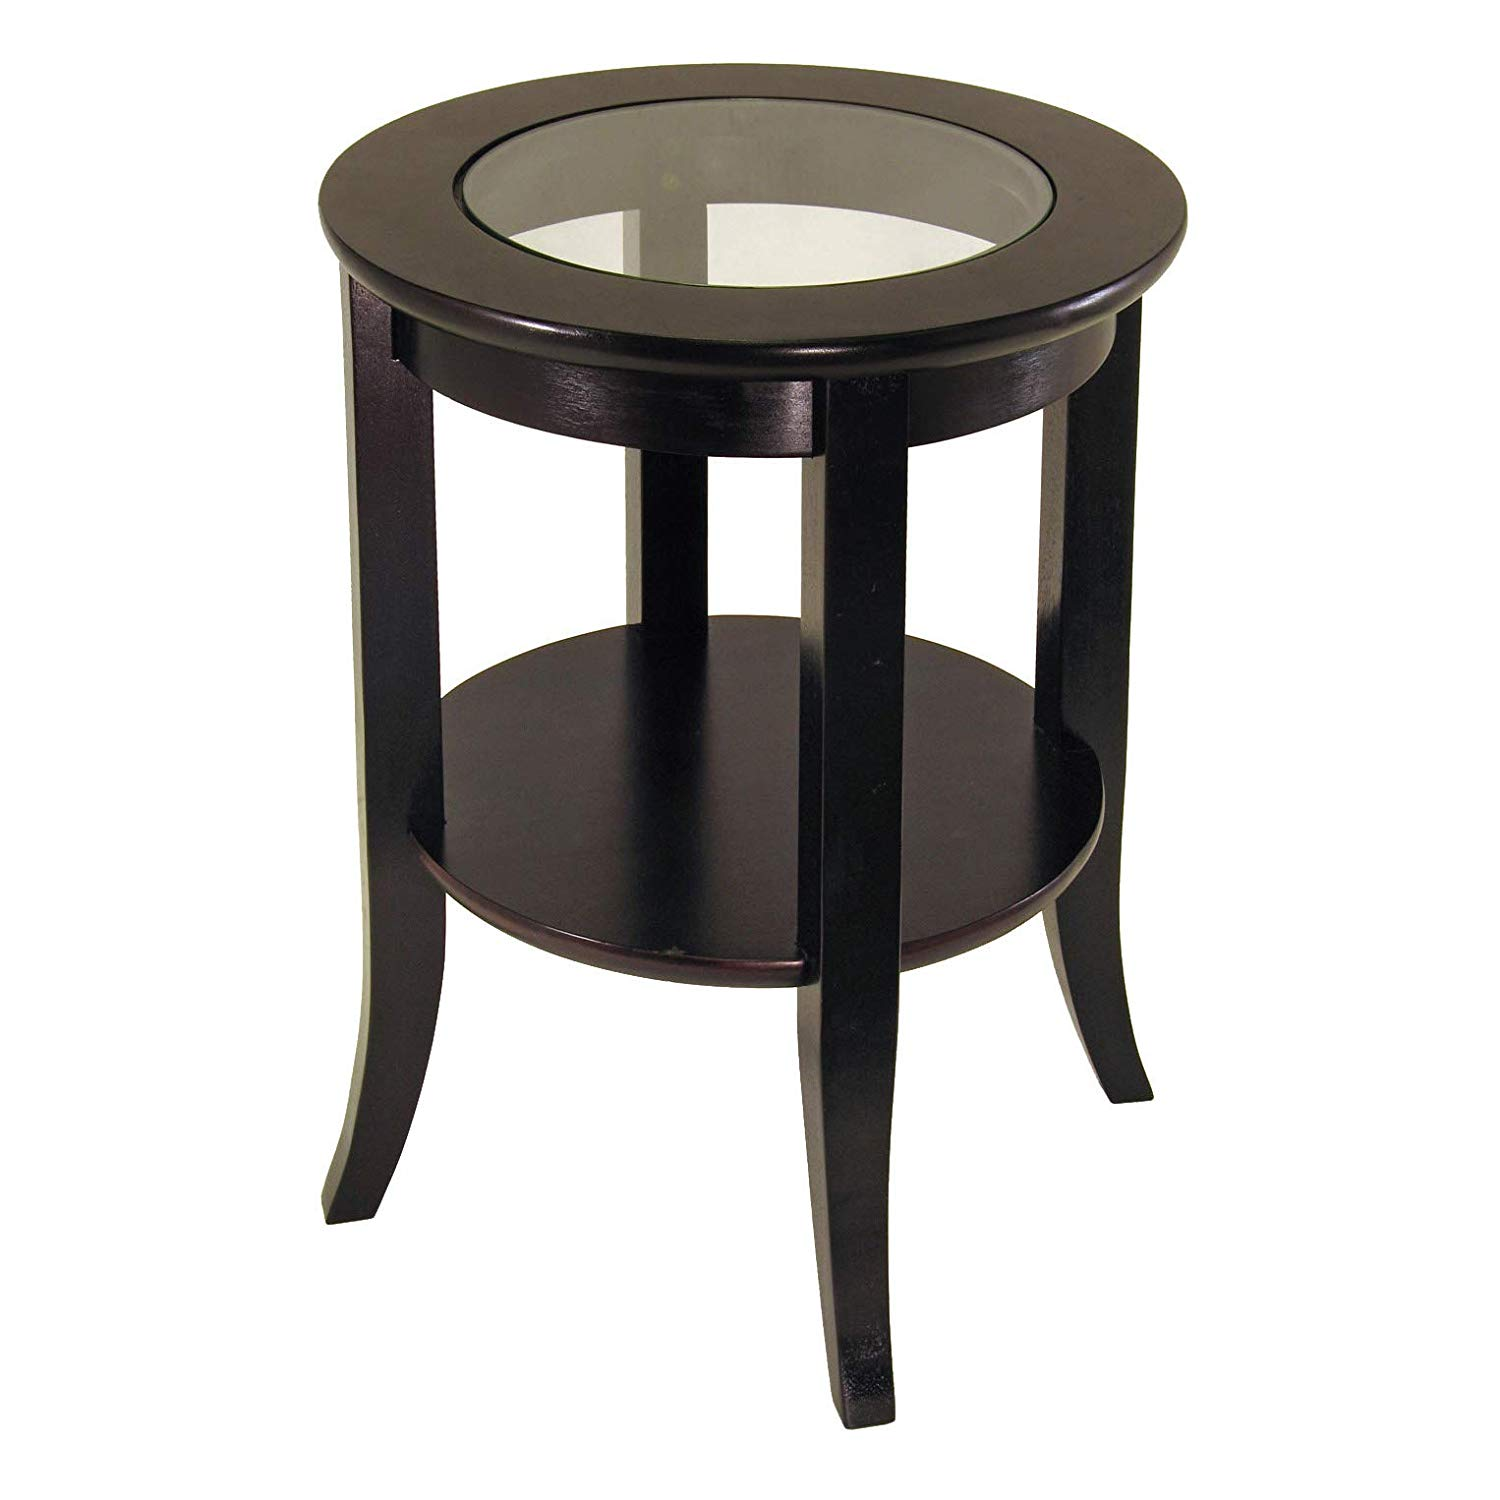 winsome wood genoa occasional table espresso end tables kitchen dining thomasville mid century modern furniture white gloss and glass side coffee elm metal console with drawers